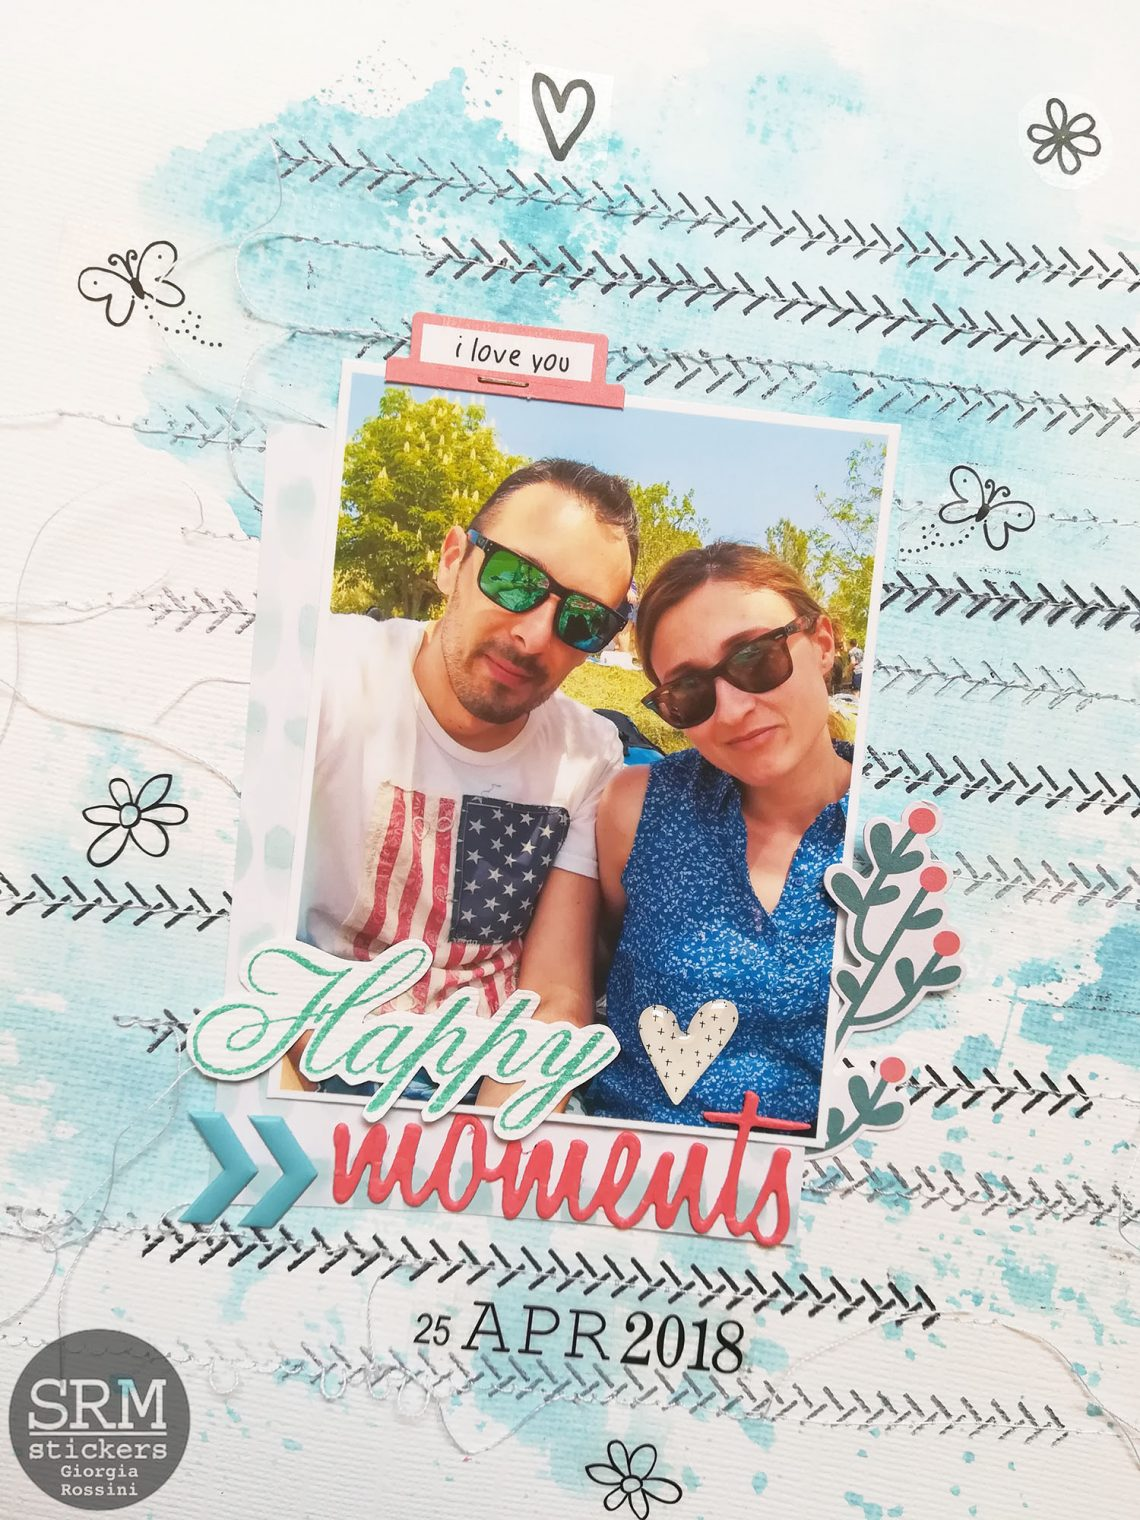 SRM stickers – layout with watercolors and stamps